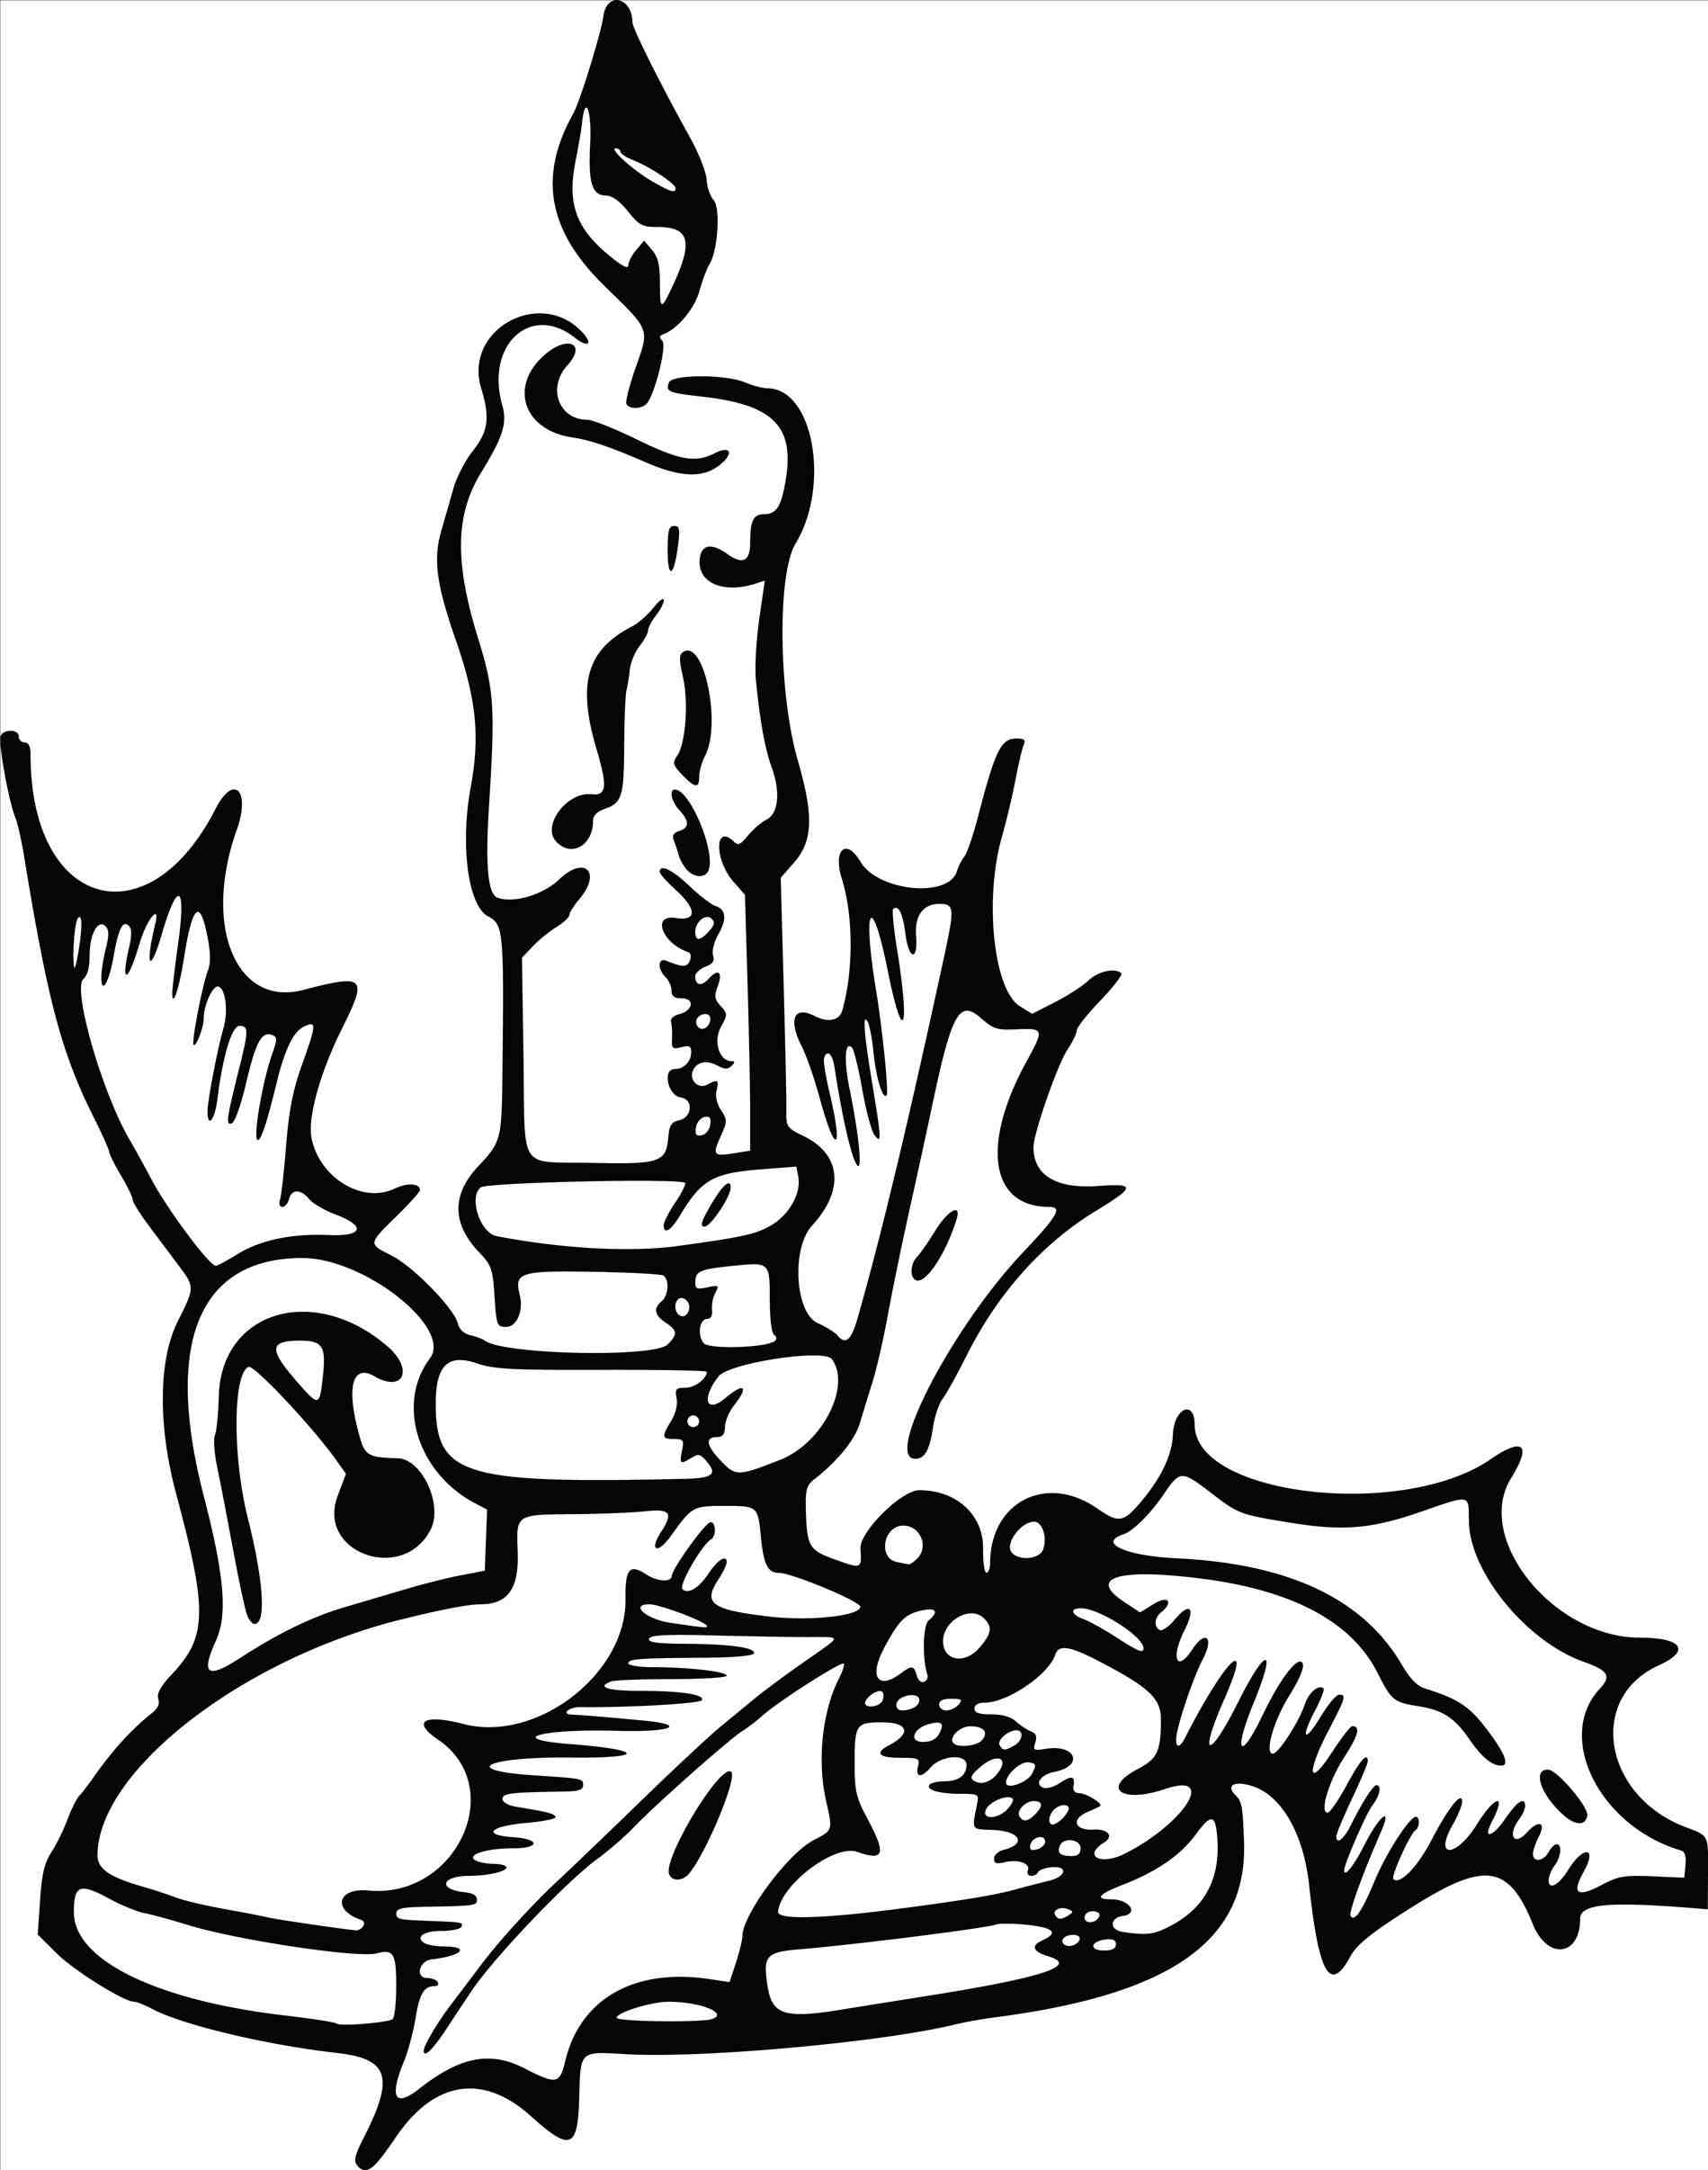 1899x2412 Christmas Candle Clip Art Black And White Cheminee.website